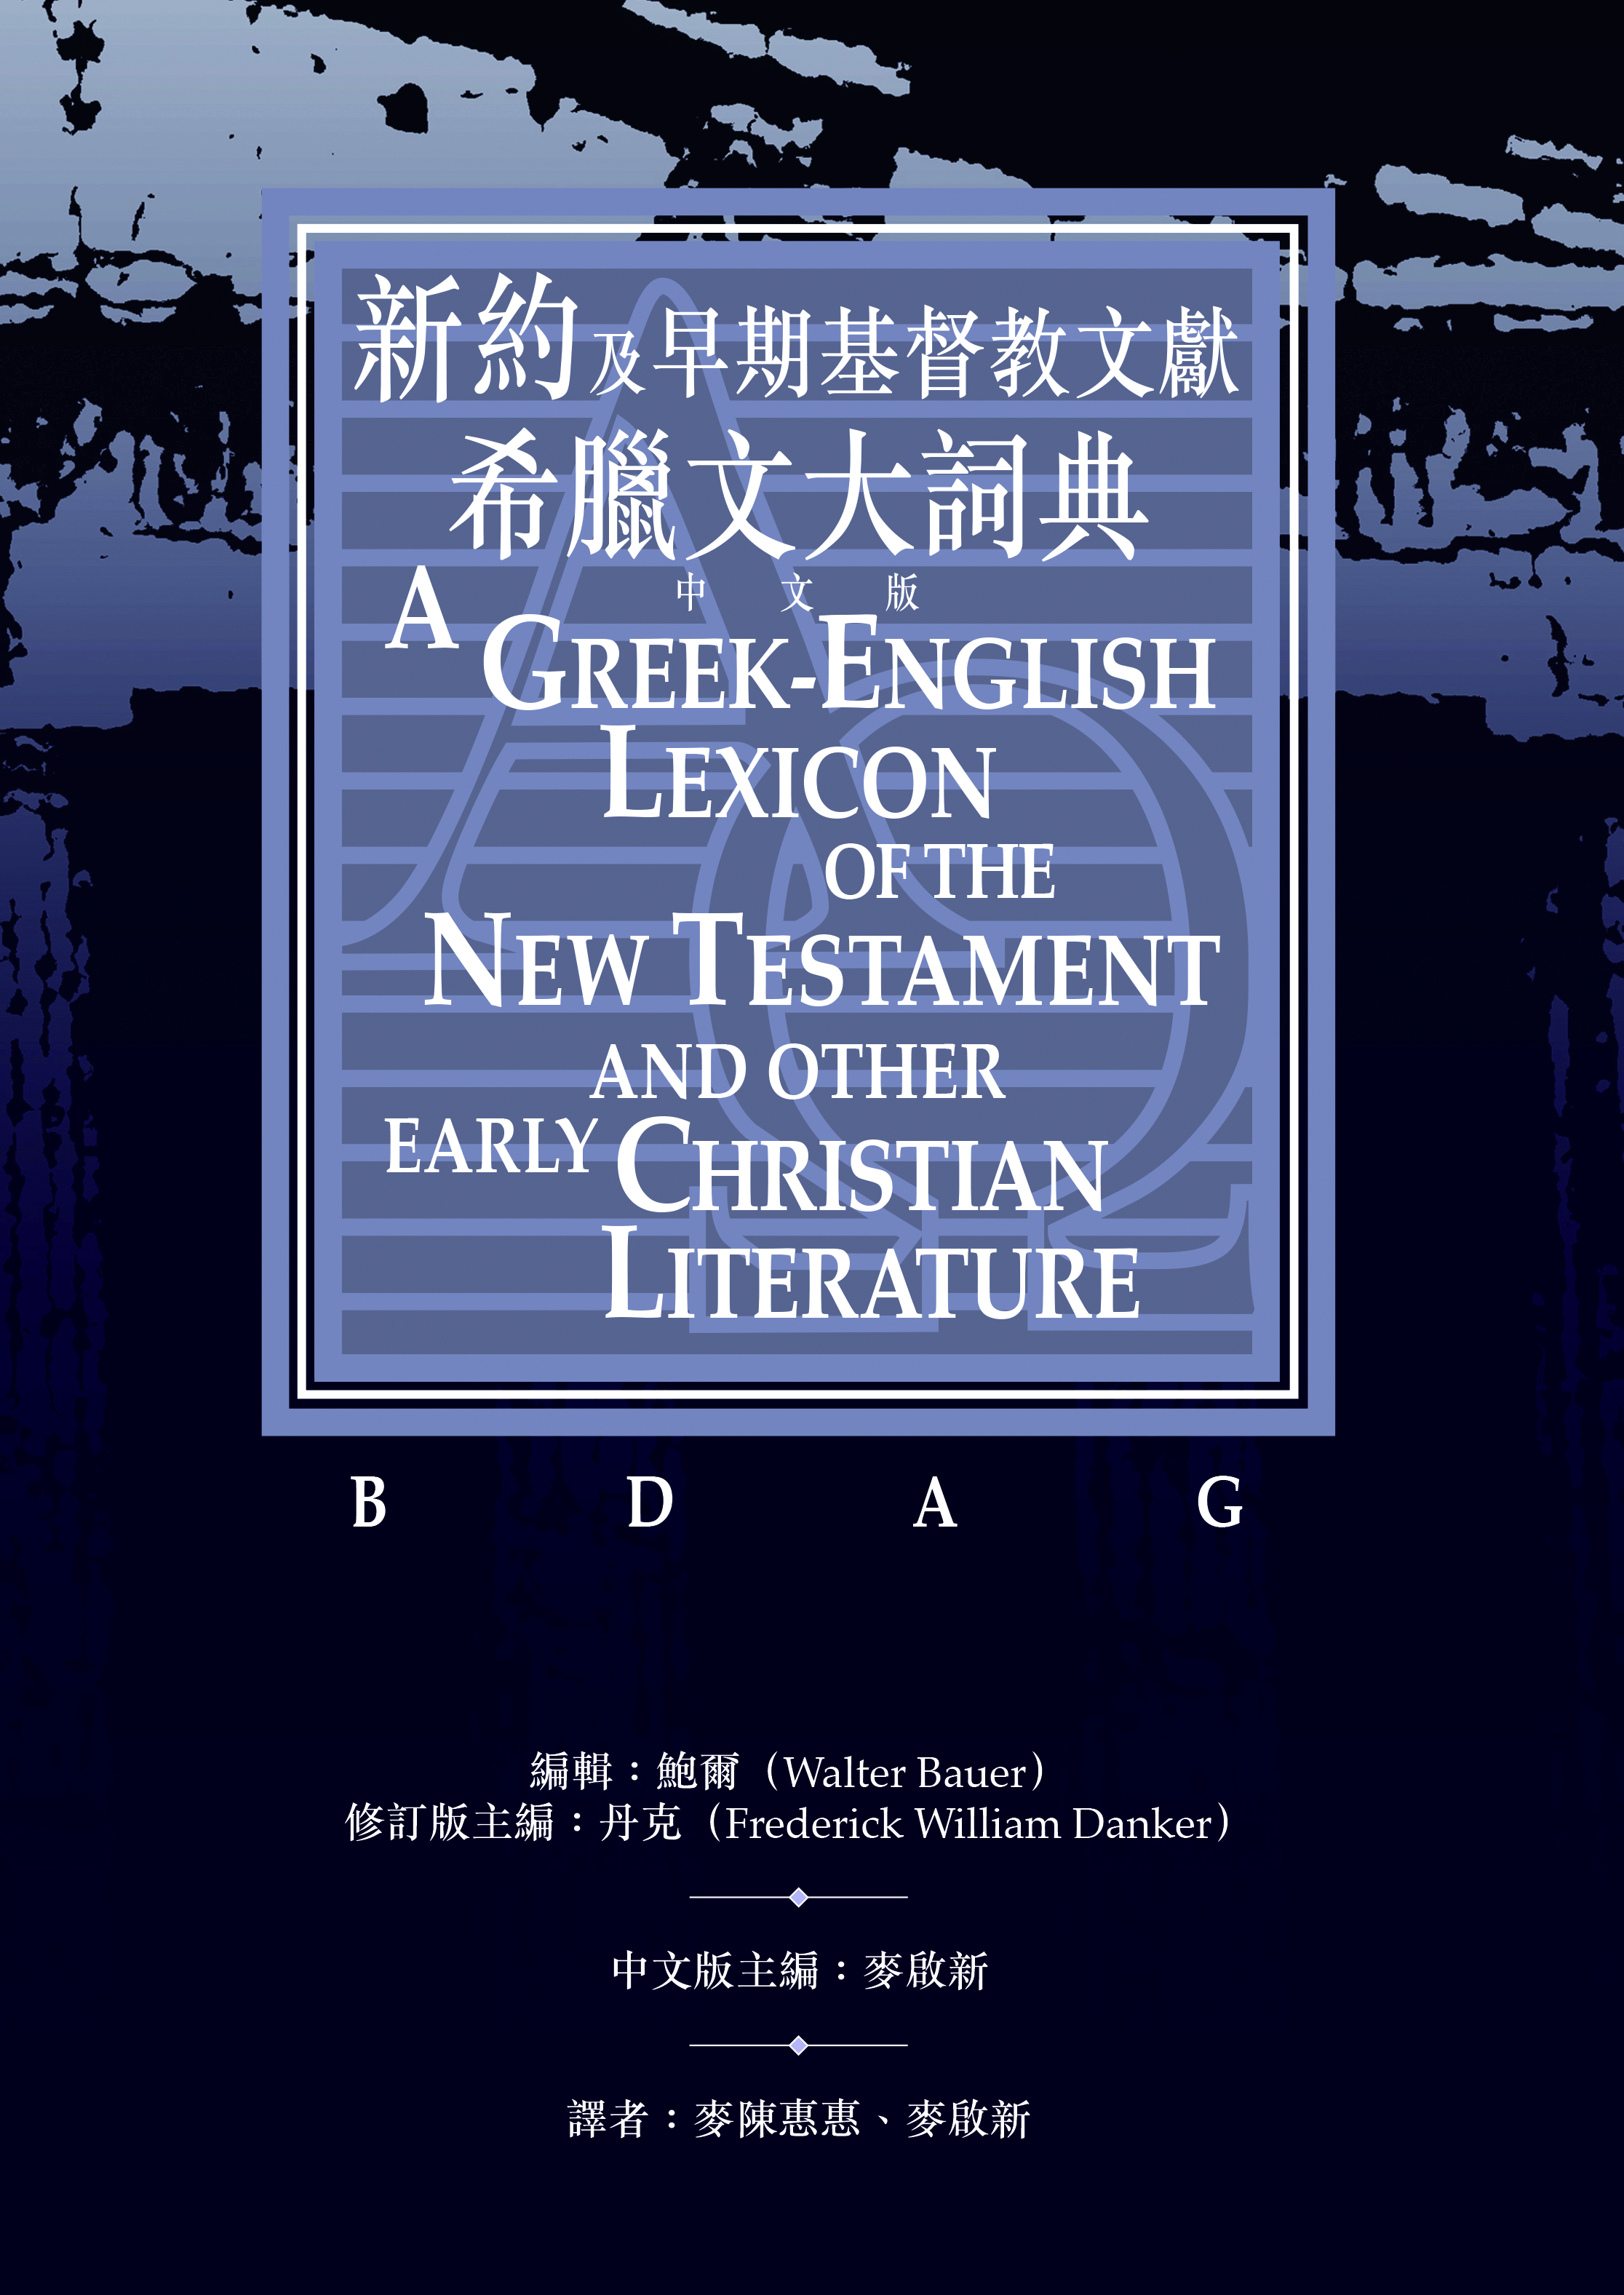 新約及早期基督教希臘文大詞典(繁體) A Greek-English Lexicon of the New Testament and other Early Christian Literature, Third Edition, BDAG (Traditional Chinese)